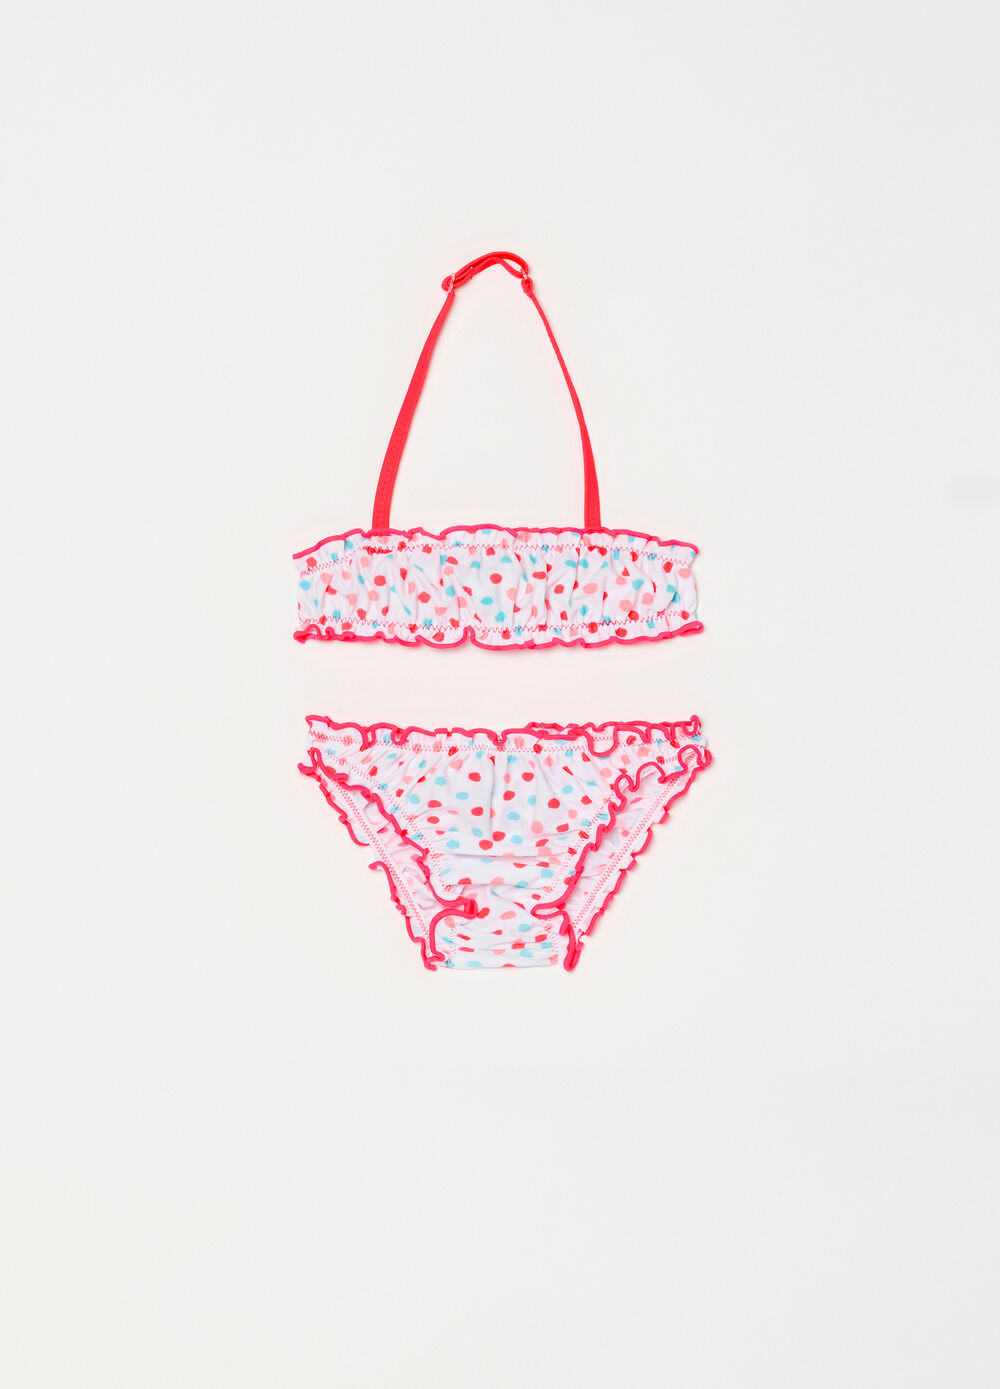 Bikini with polka dot pattern and wavy edges